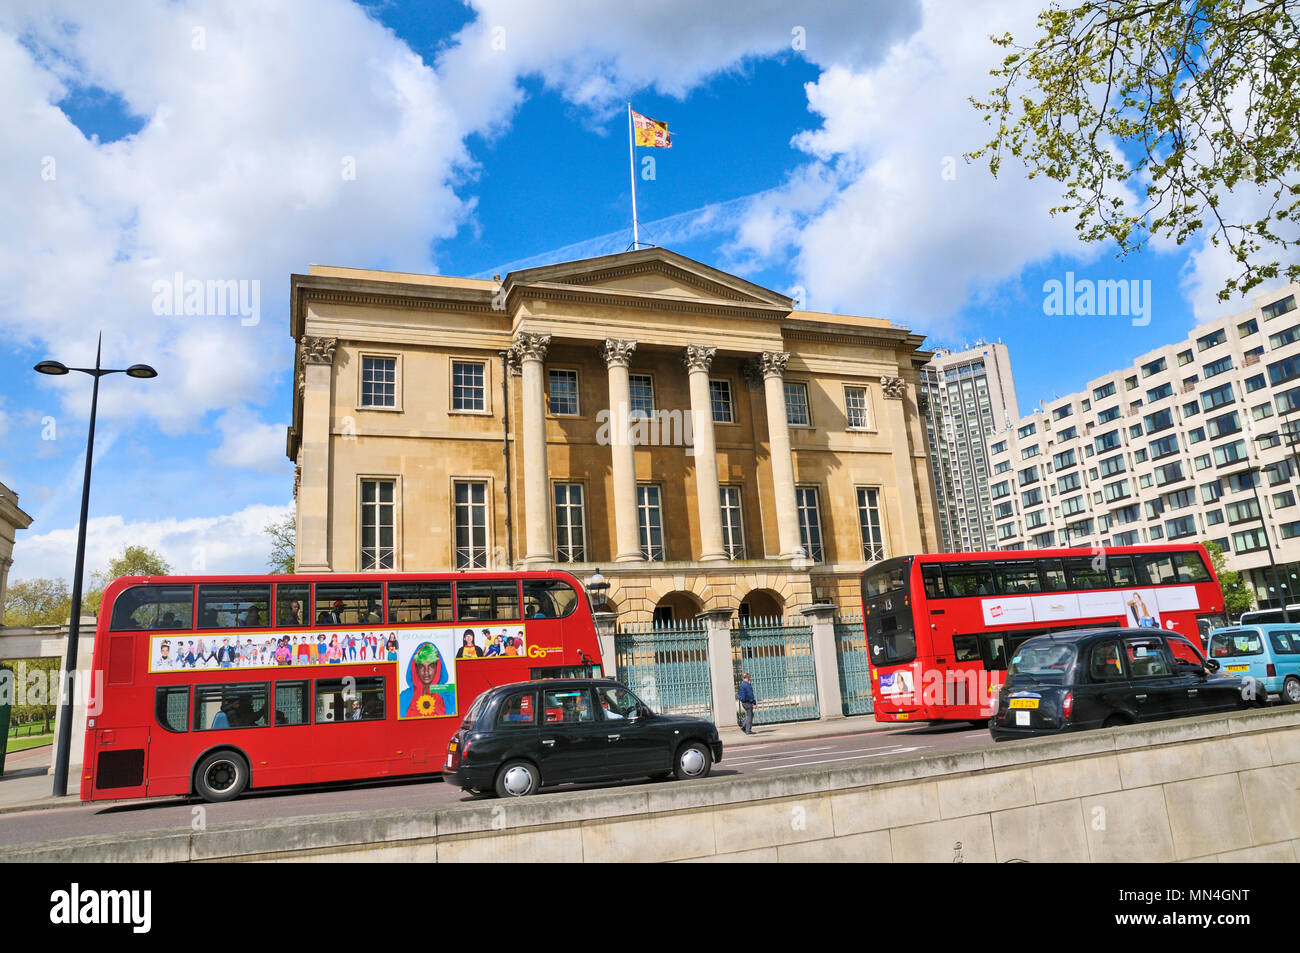 Apsley House, 149 Piccadilly, Hyde Park Corner, Westminster, London, England, UK - Stock Image